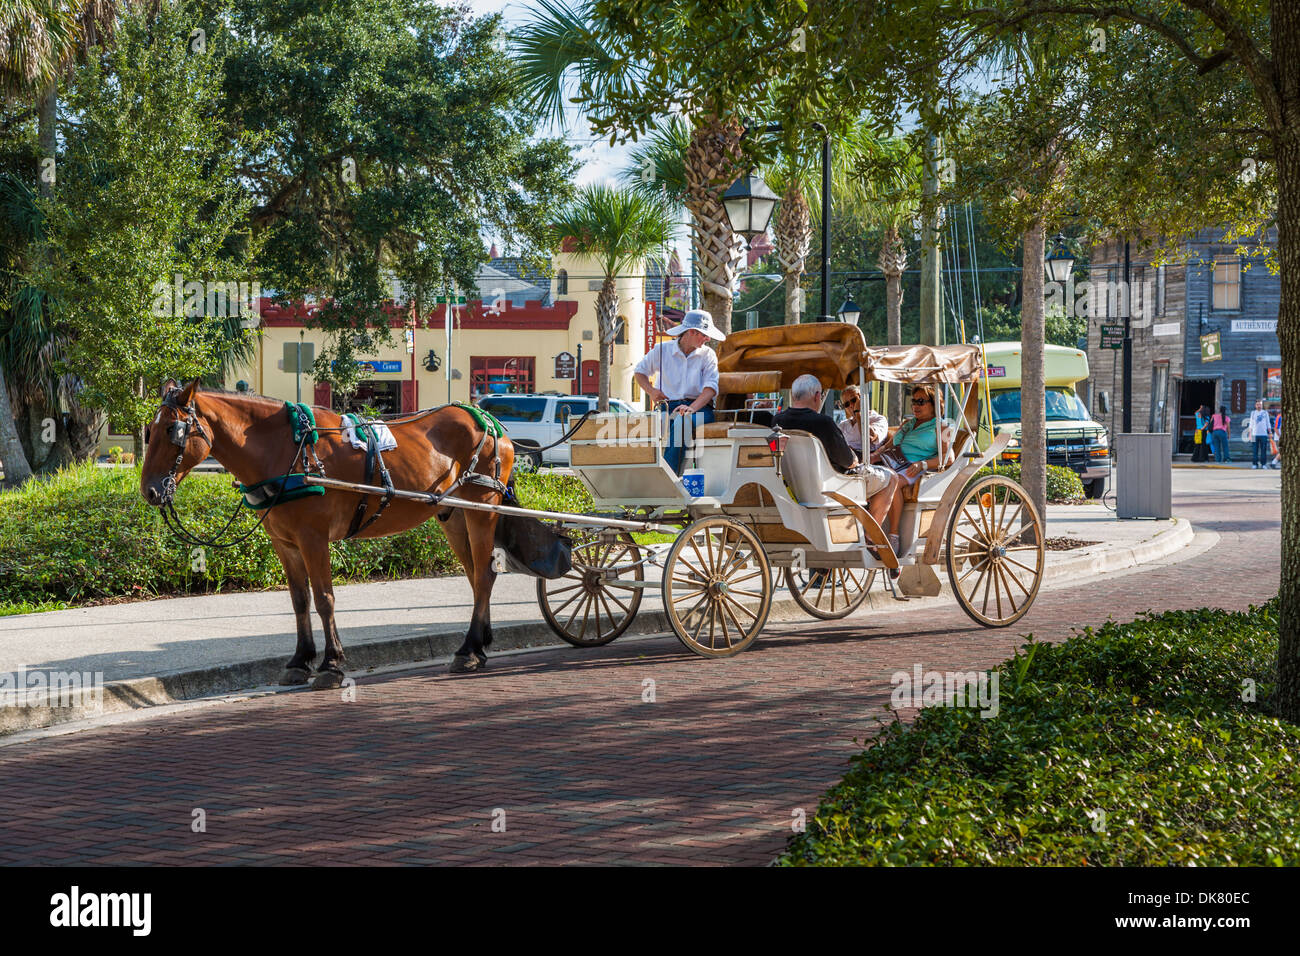 Tourists hire a horse and buggy concession for a tour of historic St. Augustine, Florida - Stock Image